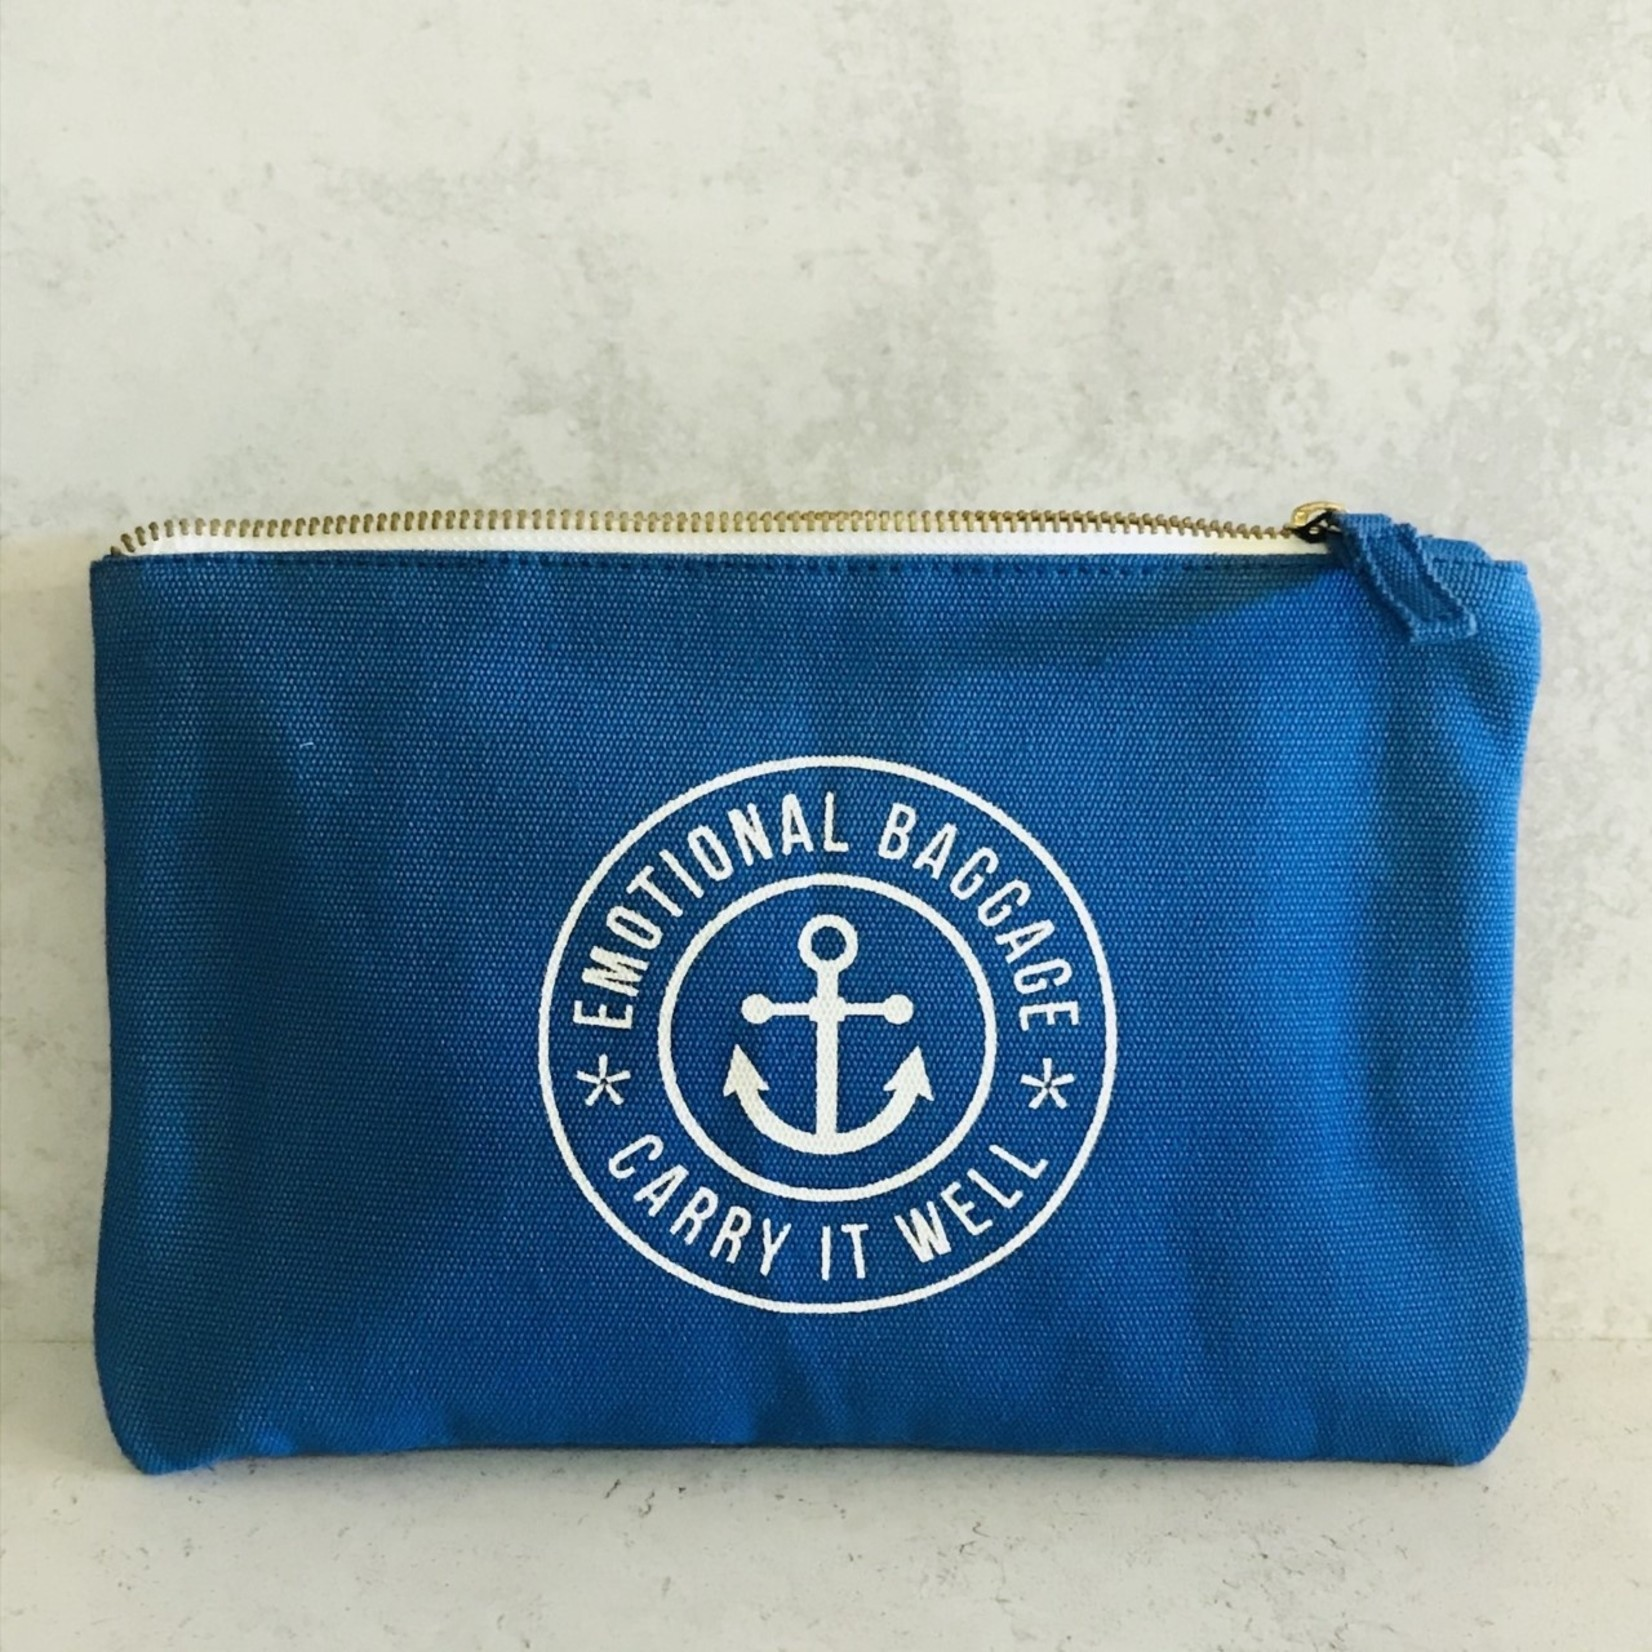 The School of Life School of Life-Emotional Baggage Pouch